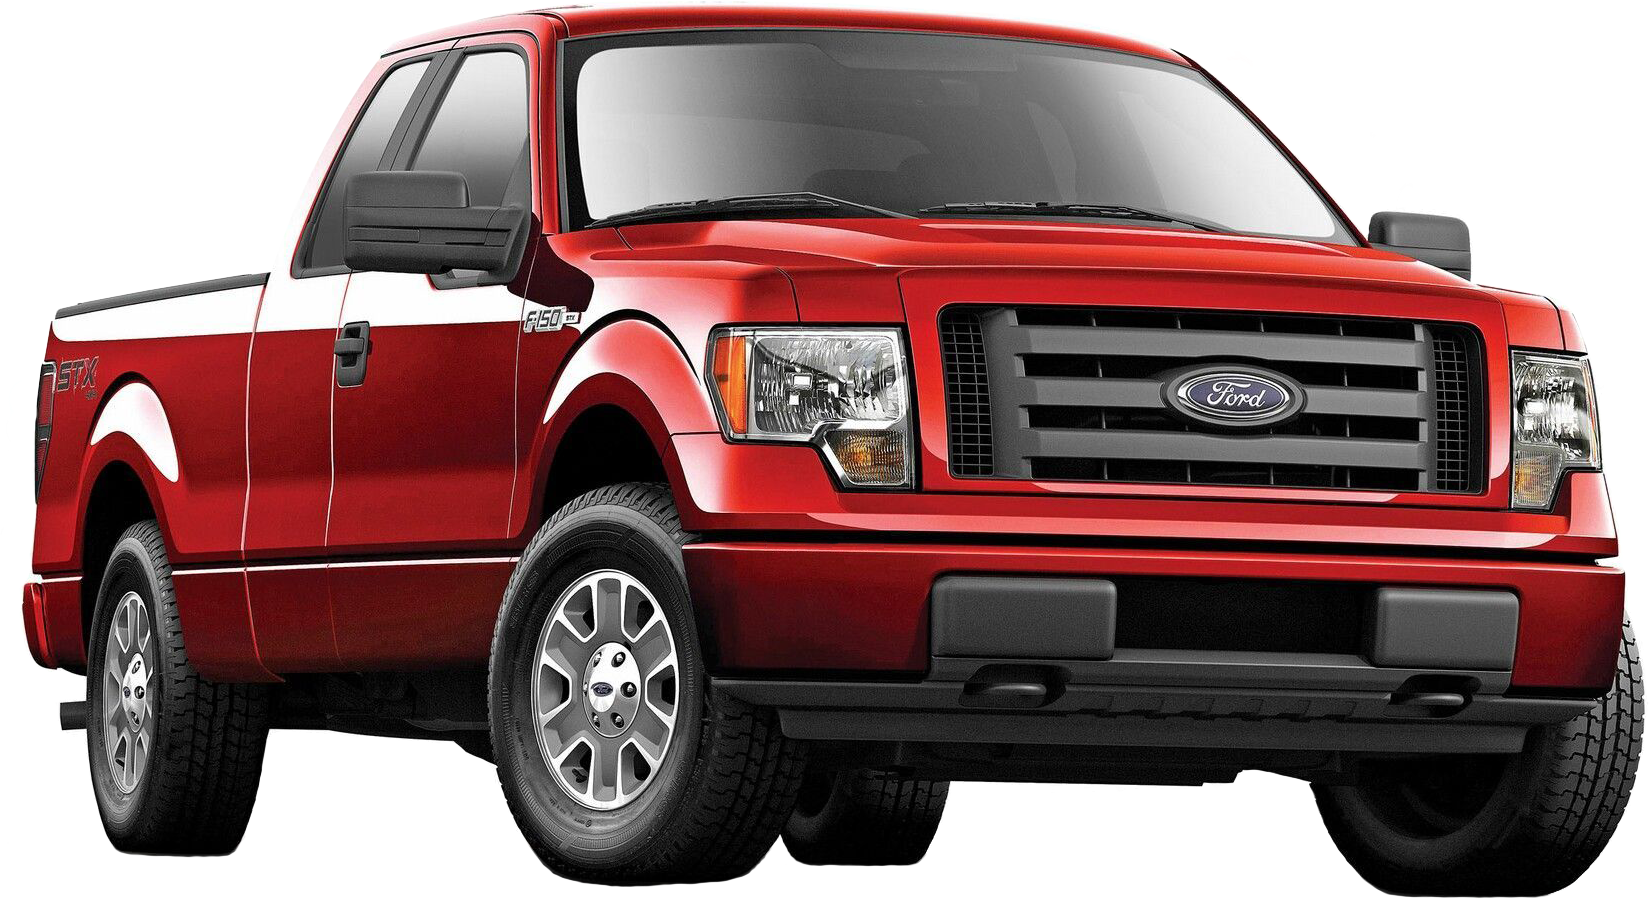 Car pick up clipart png royalty free library Ford PNG Image - PurePNG | Free transparent CC0 PNG Image Library png royalty free library